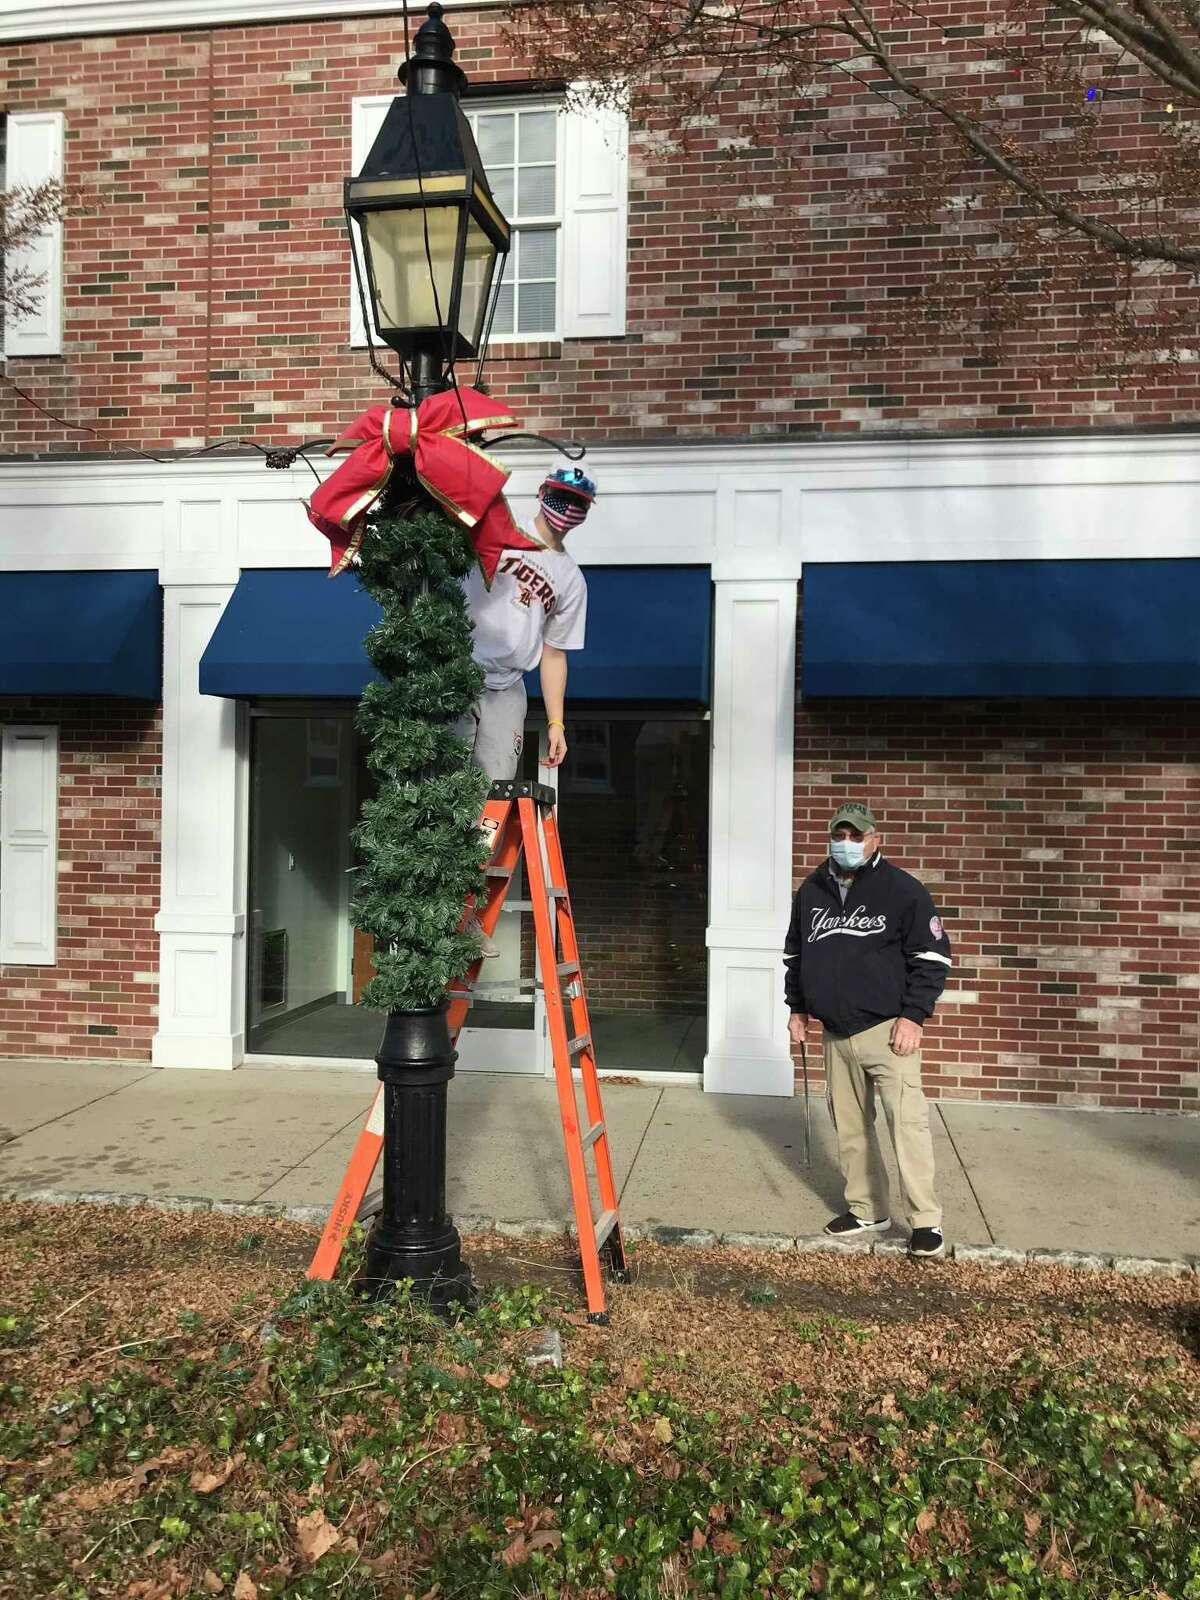 American Legion Post 78 in Ridgefield Legionnaire Mike Liberta and Legionnaire Bridger Rowan decorate a lamppost near a brick building on Catoonah Street in the town on Saturday, Nov. 21 as part of their annual decorating of lampposts in the town.